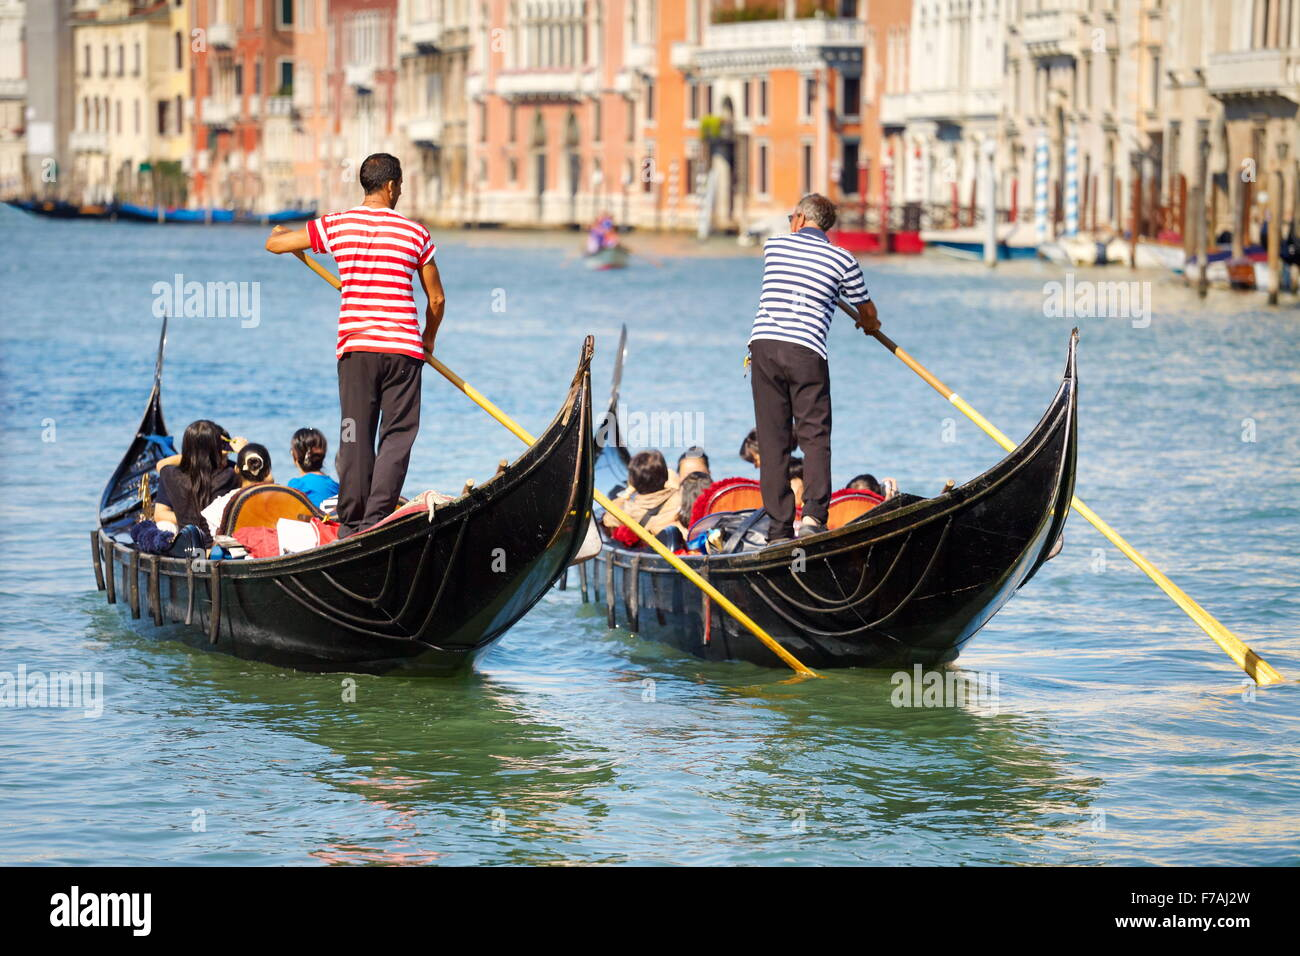 Tourists in venetian gondolas on Grand Canal (Canal Grande), Venice, Italy Stock Photo